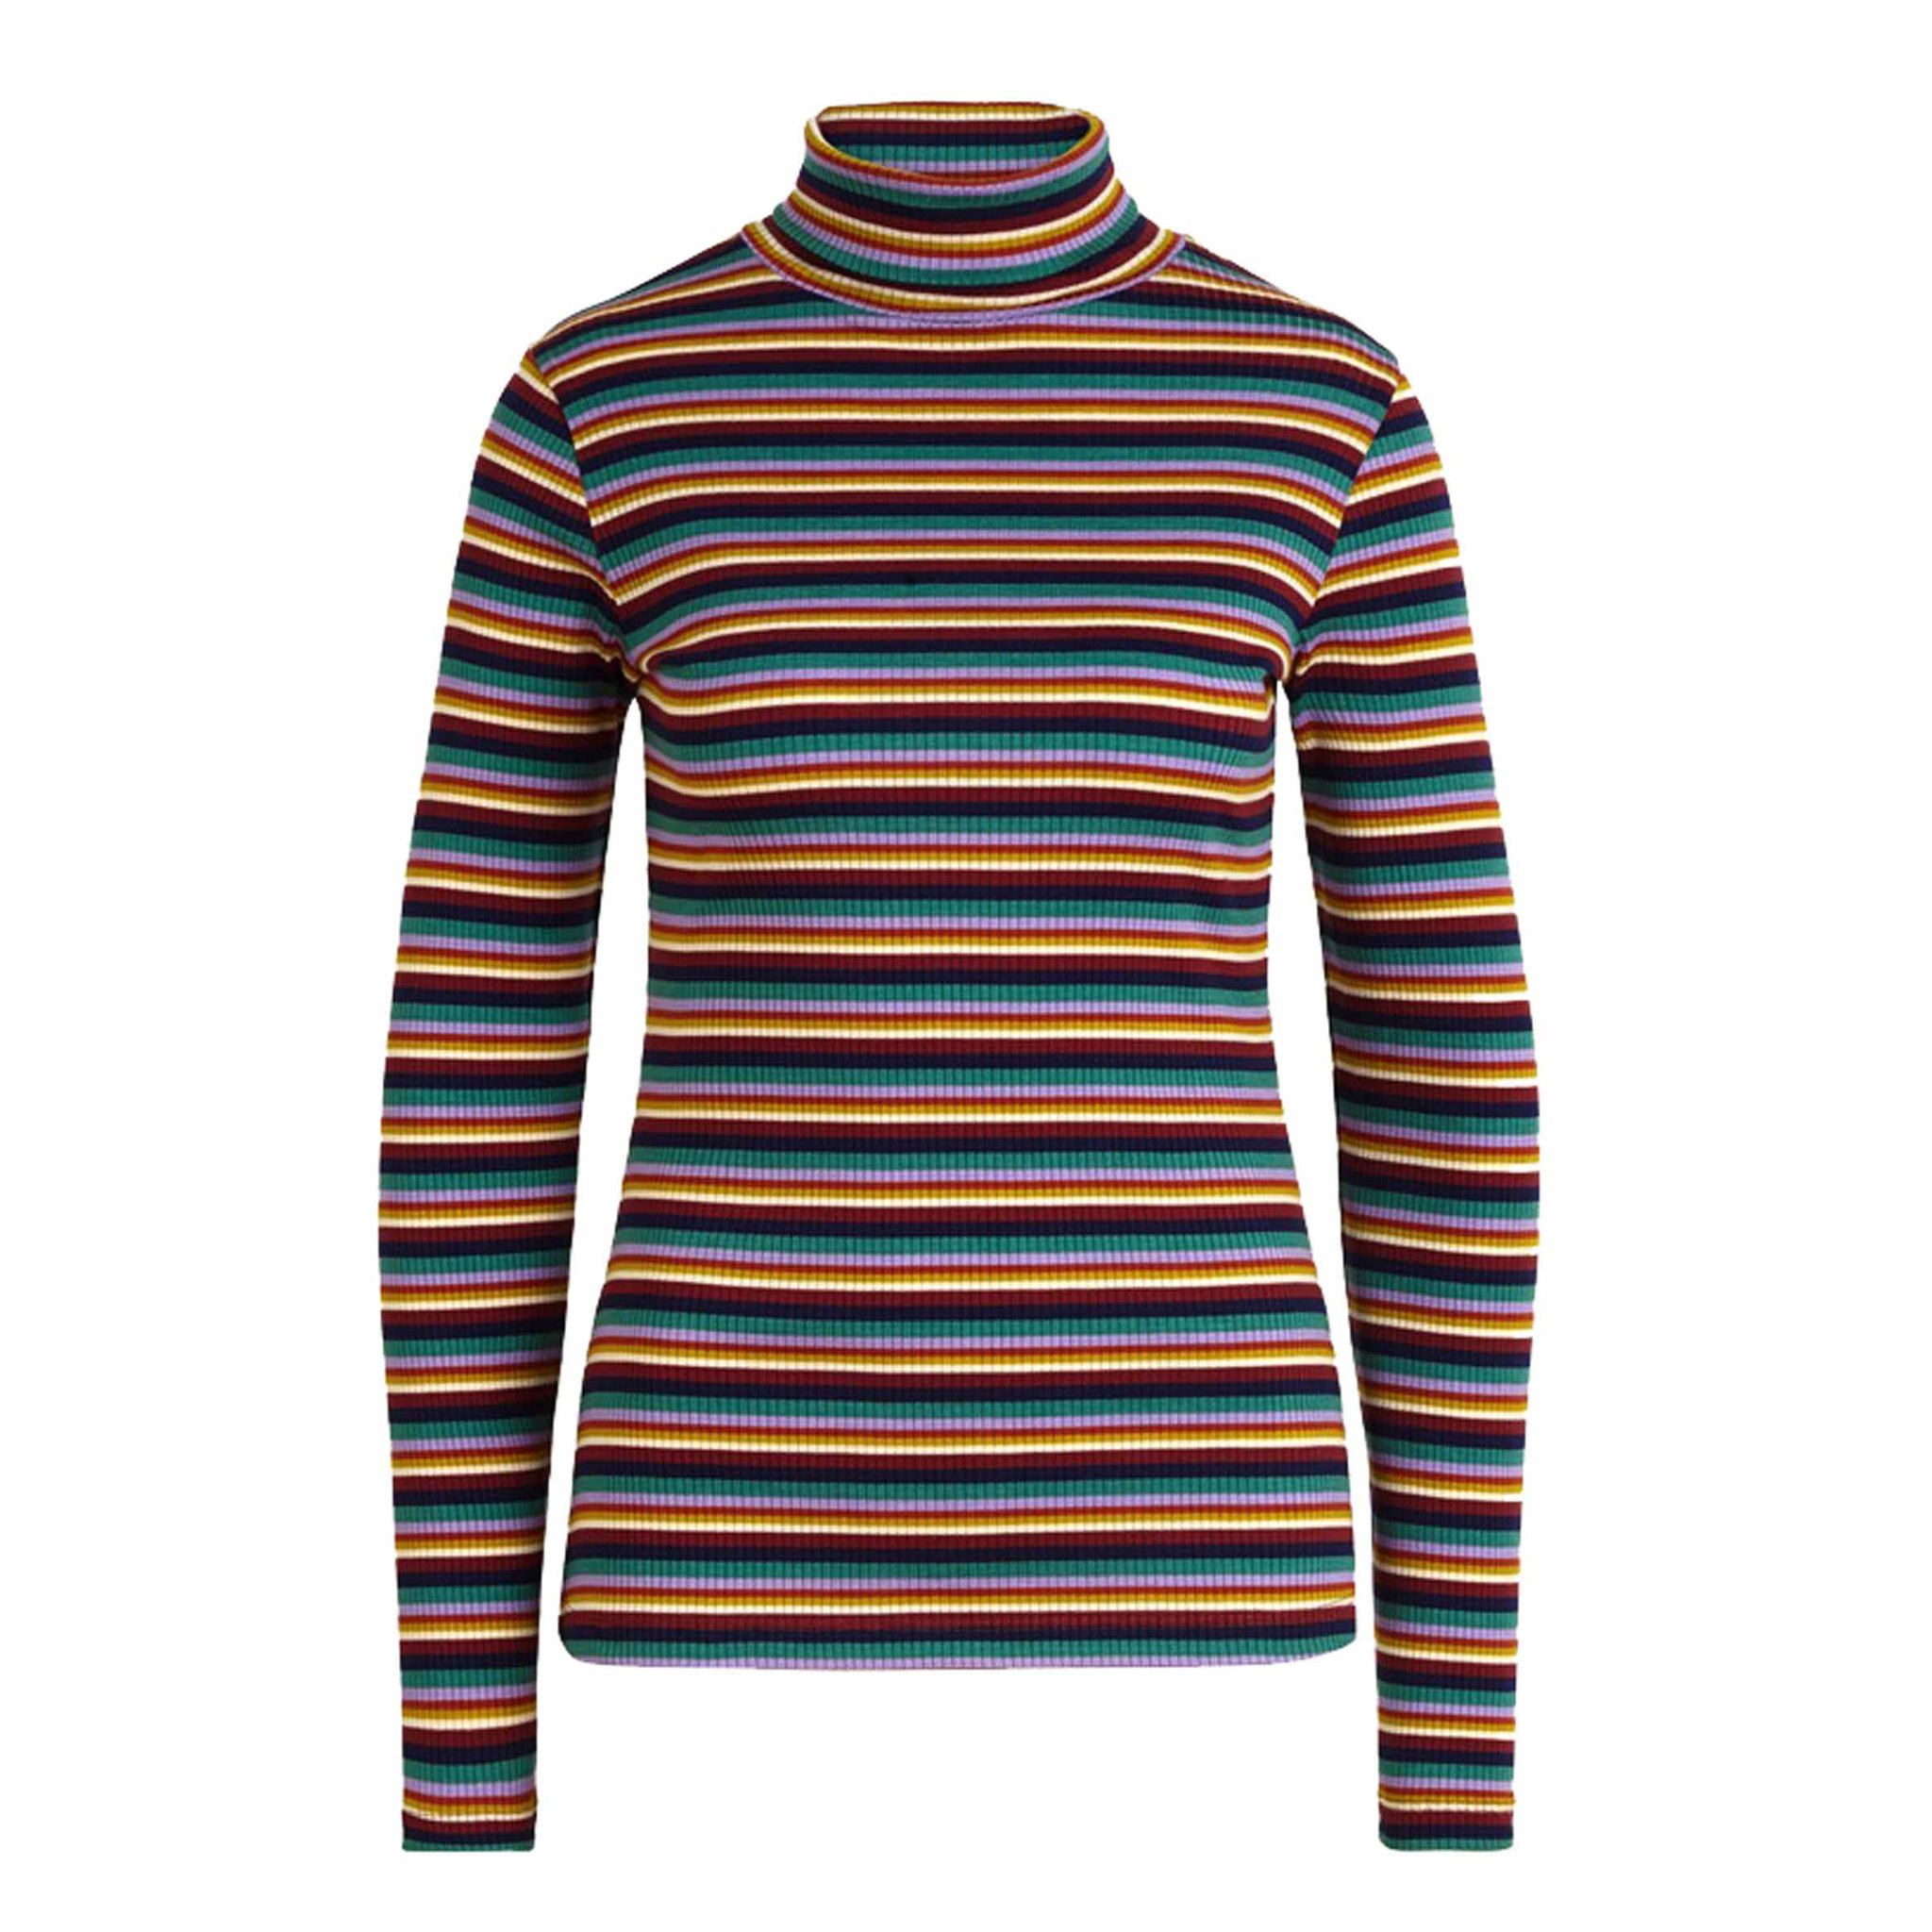 ROLLNECK TOP DAYDREAM STRIPE KING LOUIE